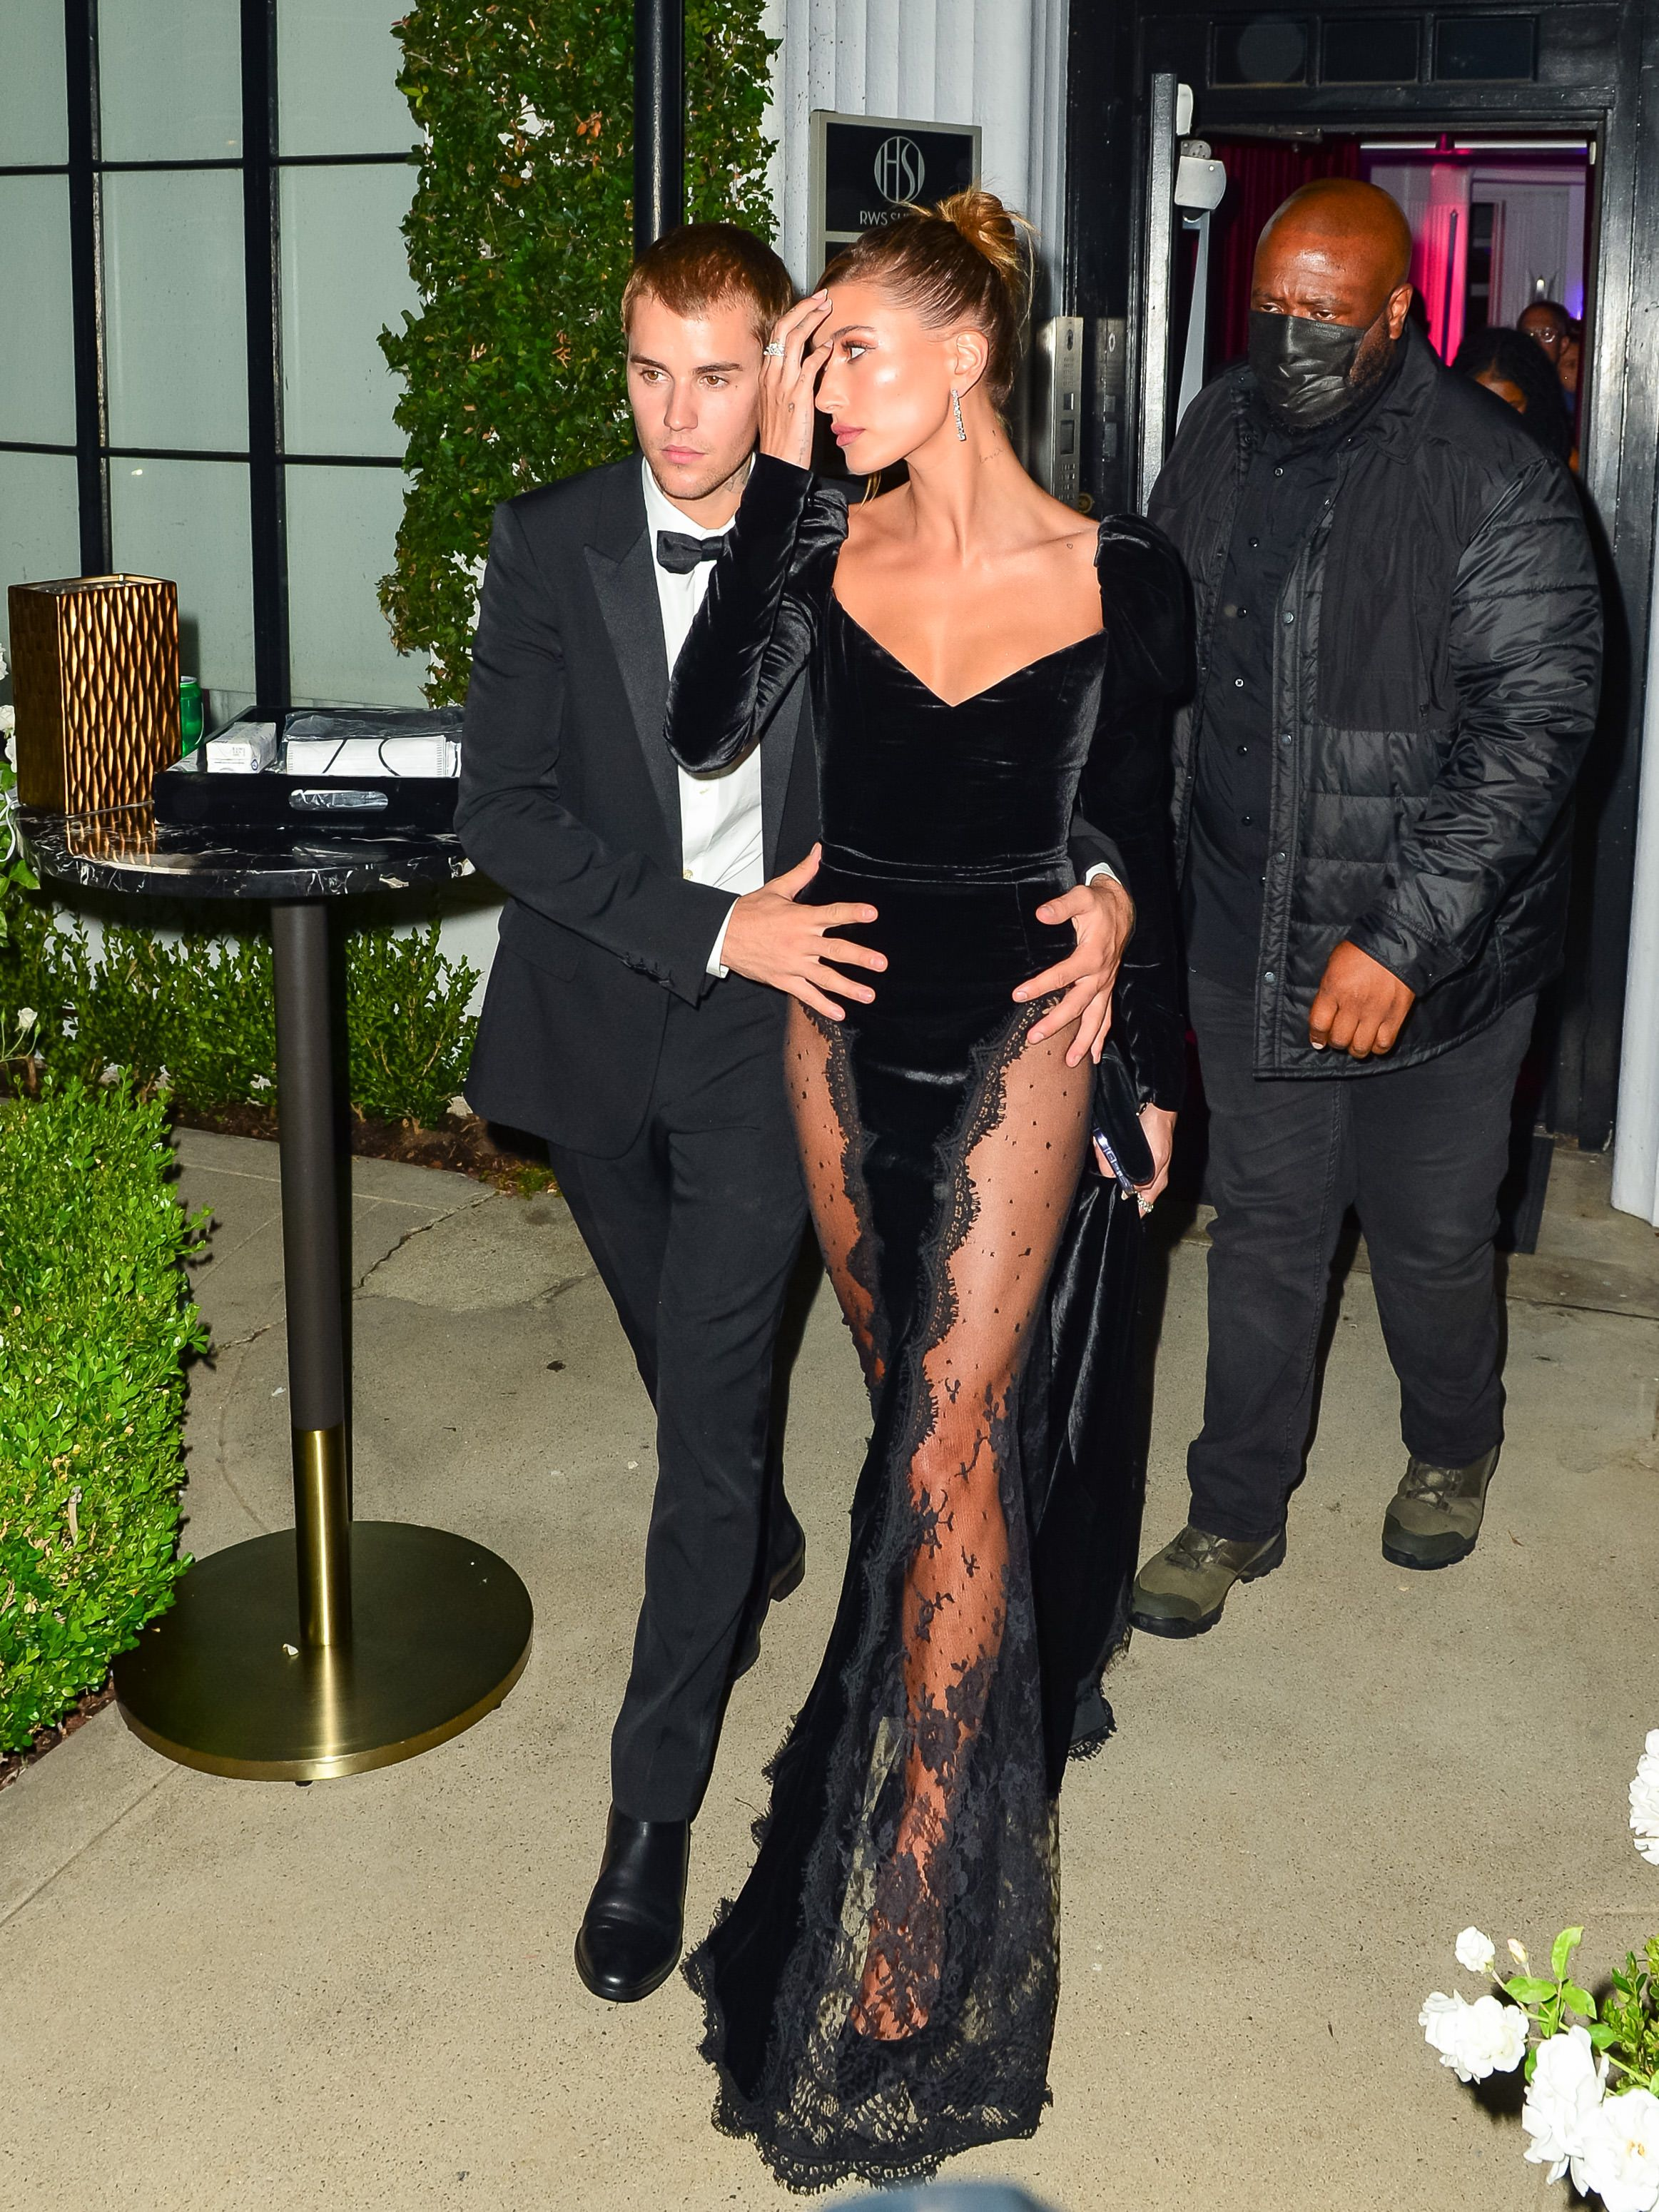 Hailey Bieber Wears Thigh-High Leg Slit Dress With Justin for Art Gallery  Auction